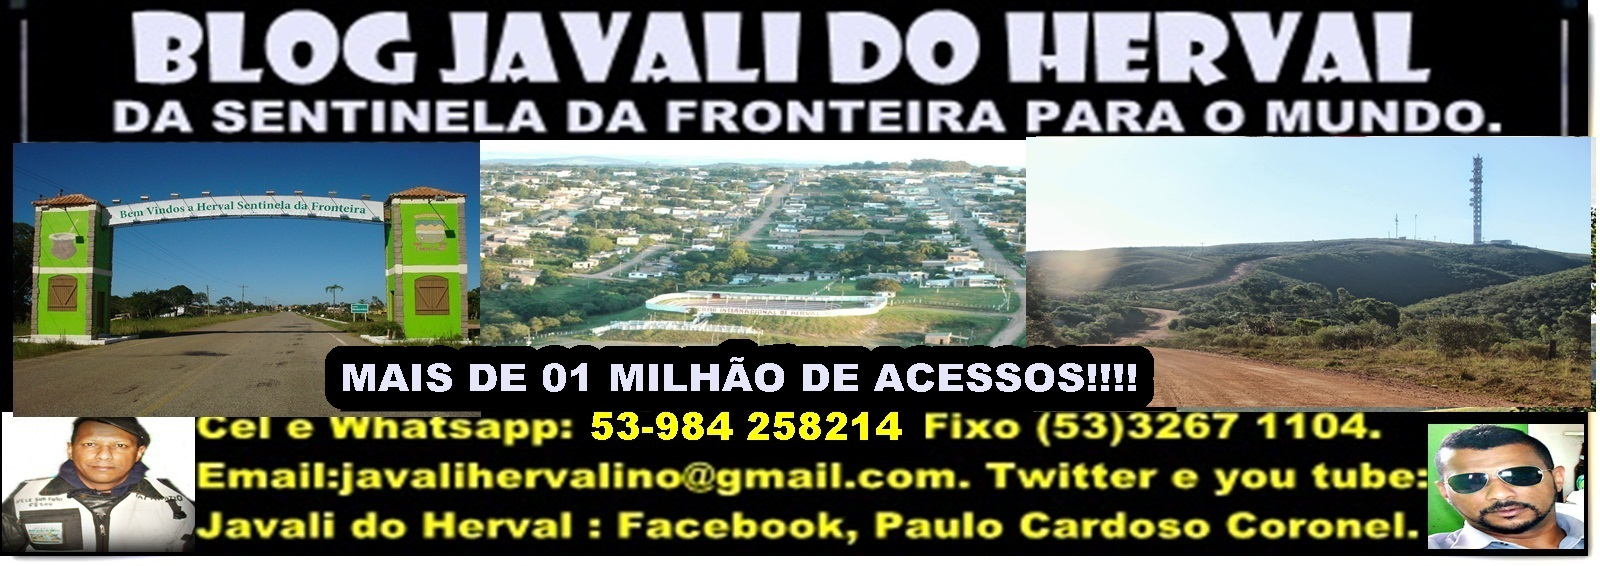 BLOG JAVALI DO HERVAL  javalihervalino@gmail.com  (53) 84258214